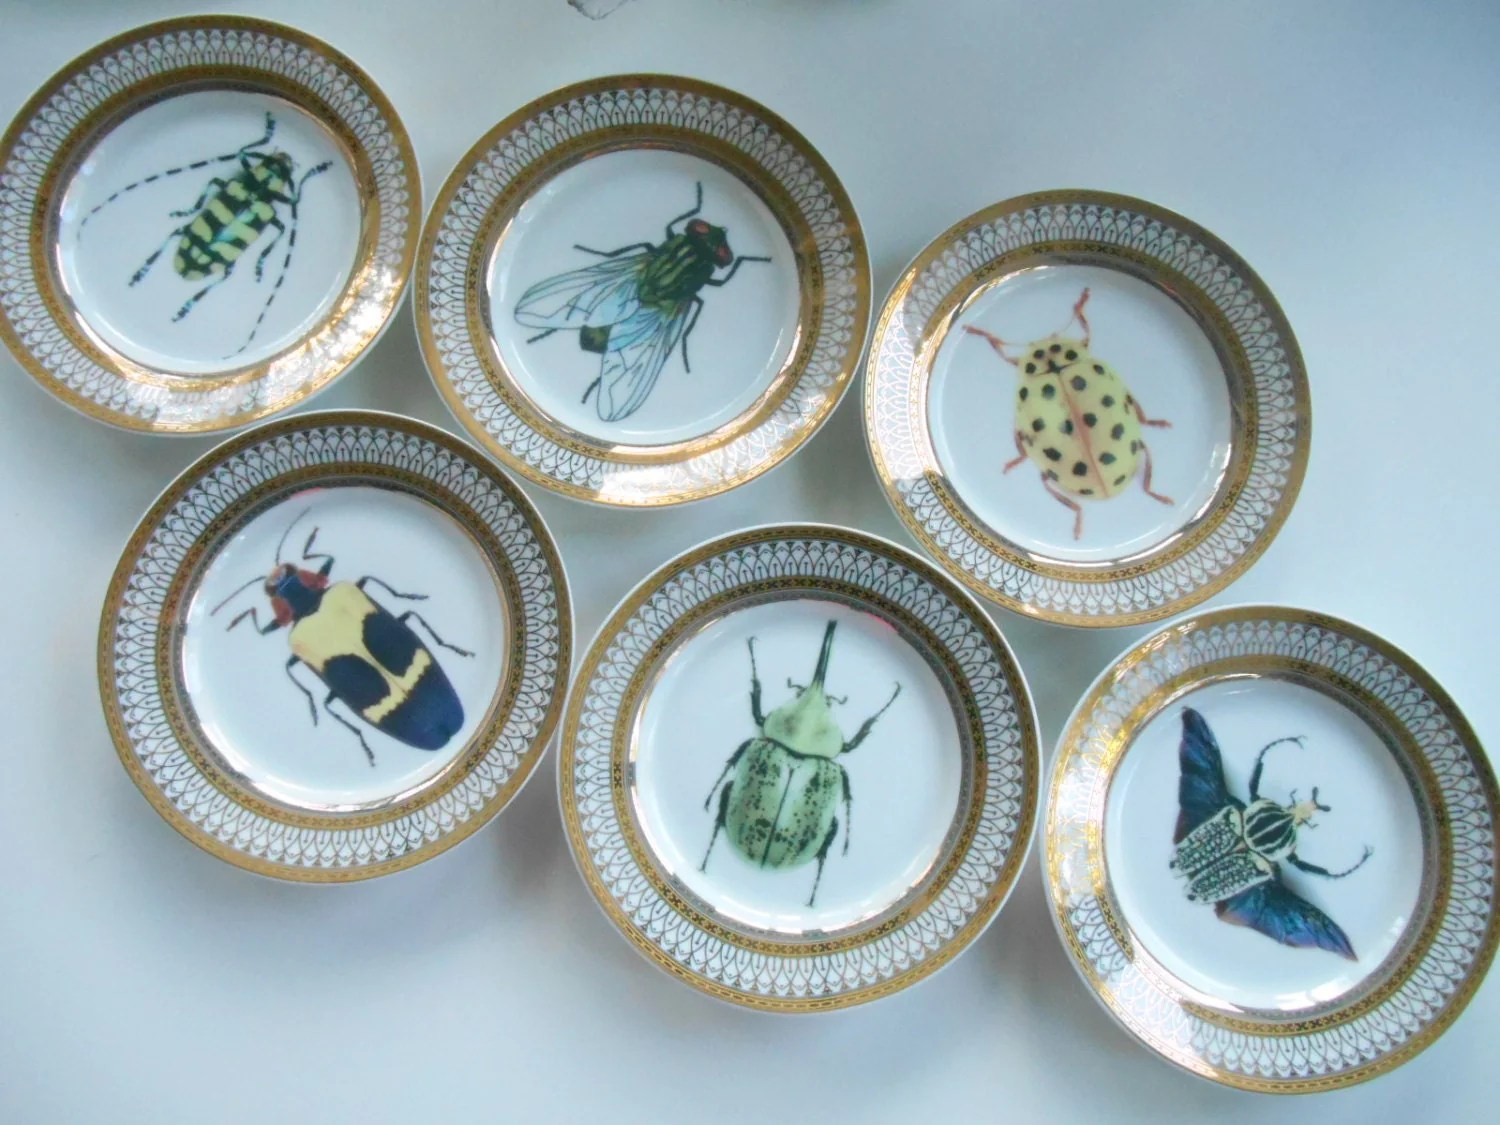 Customized Dinnerware & Common Questions About Ceramic